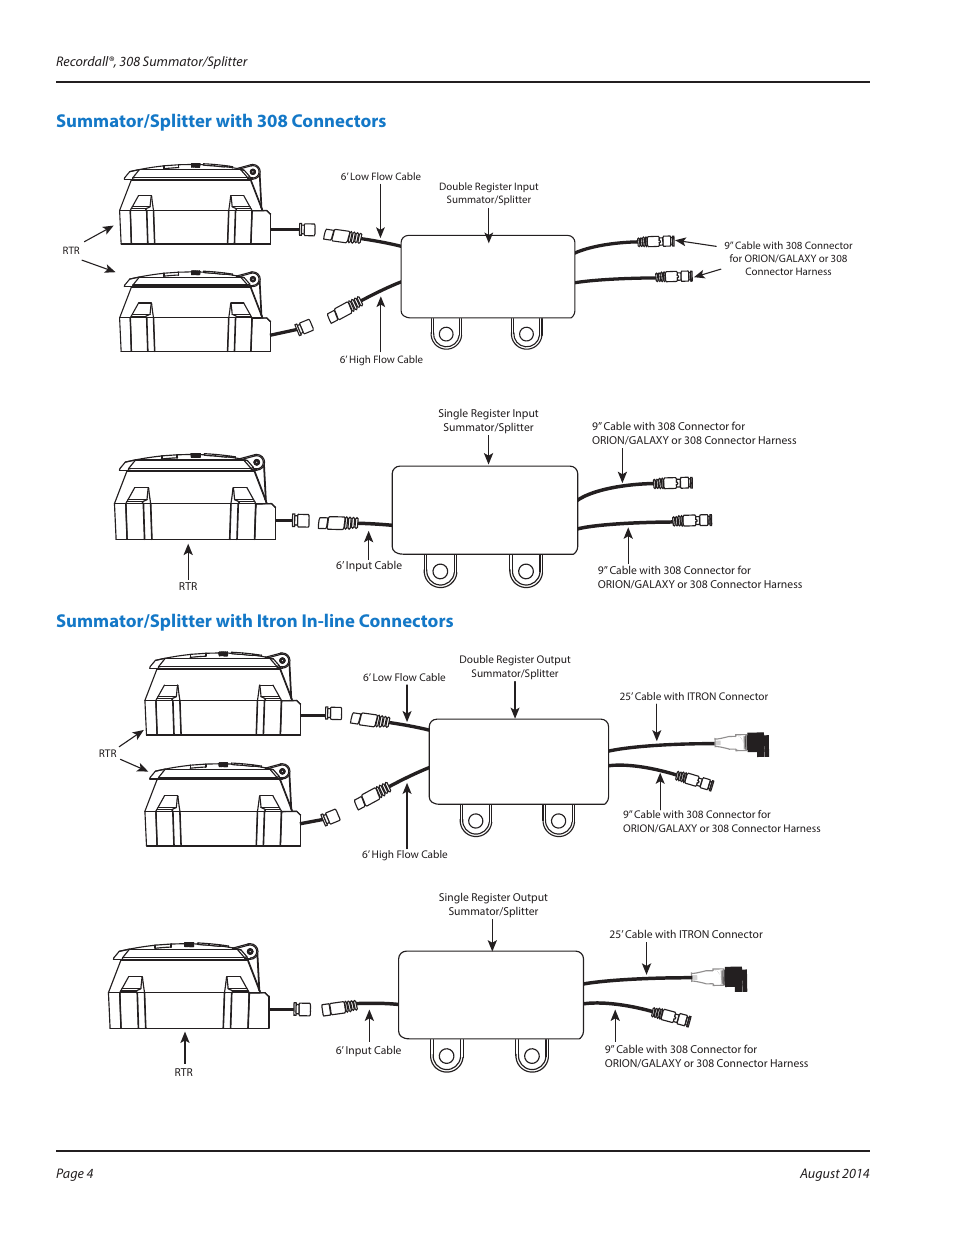 Summator/splitter with 308 connectors, Summator/splitter with itron in-line  connectors | Badger Meter Recordall Transmitter Register (RTR) User Manual  ...